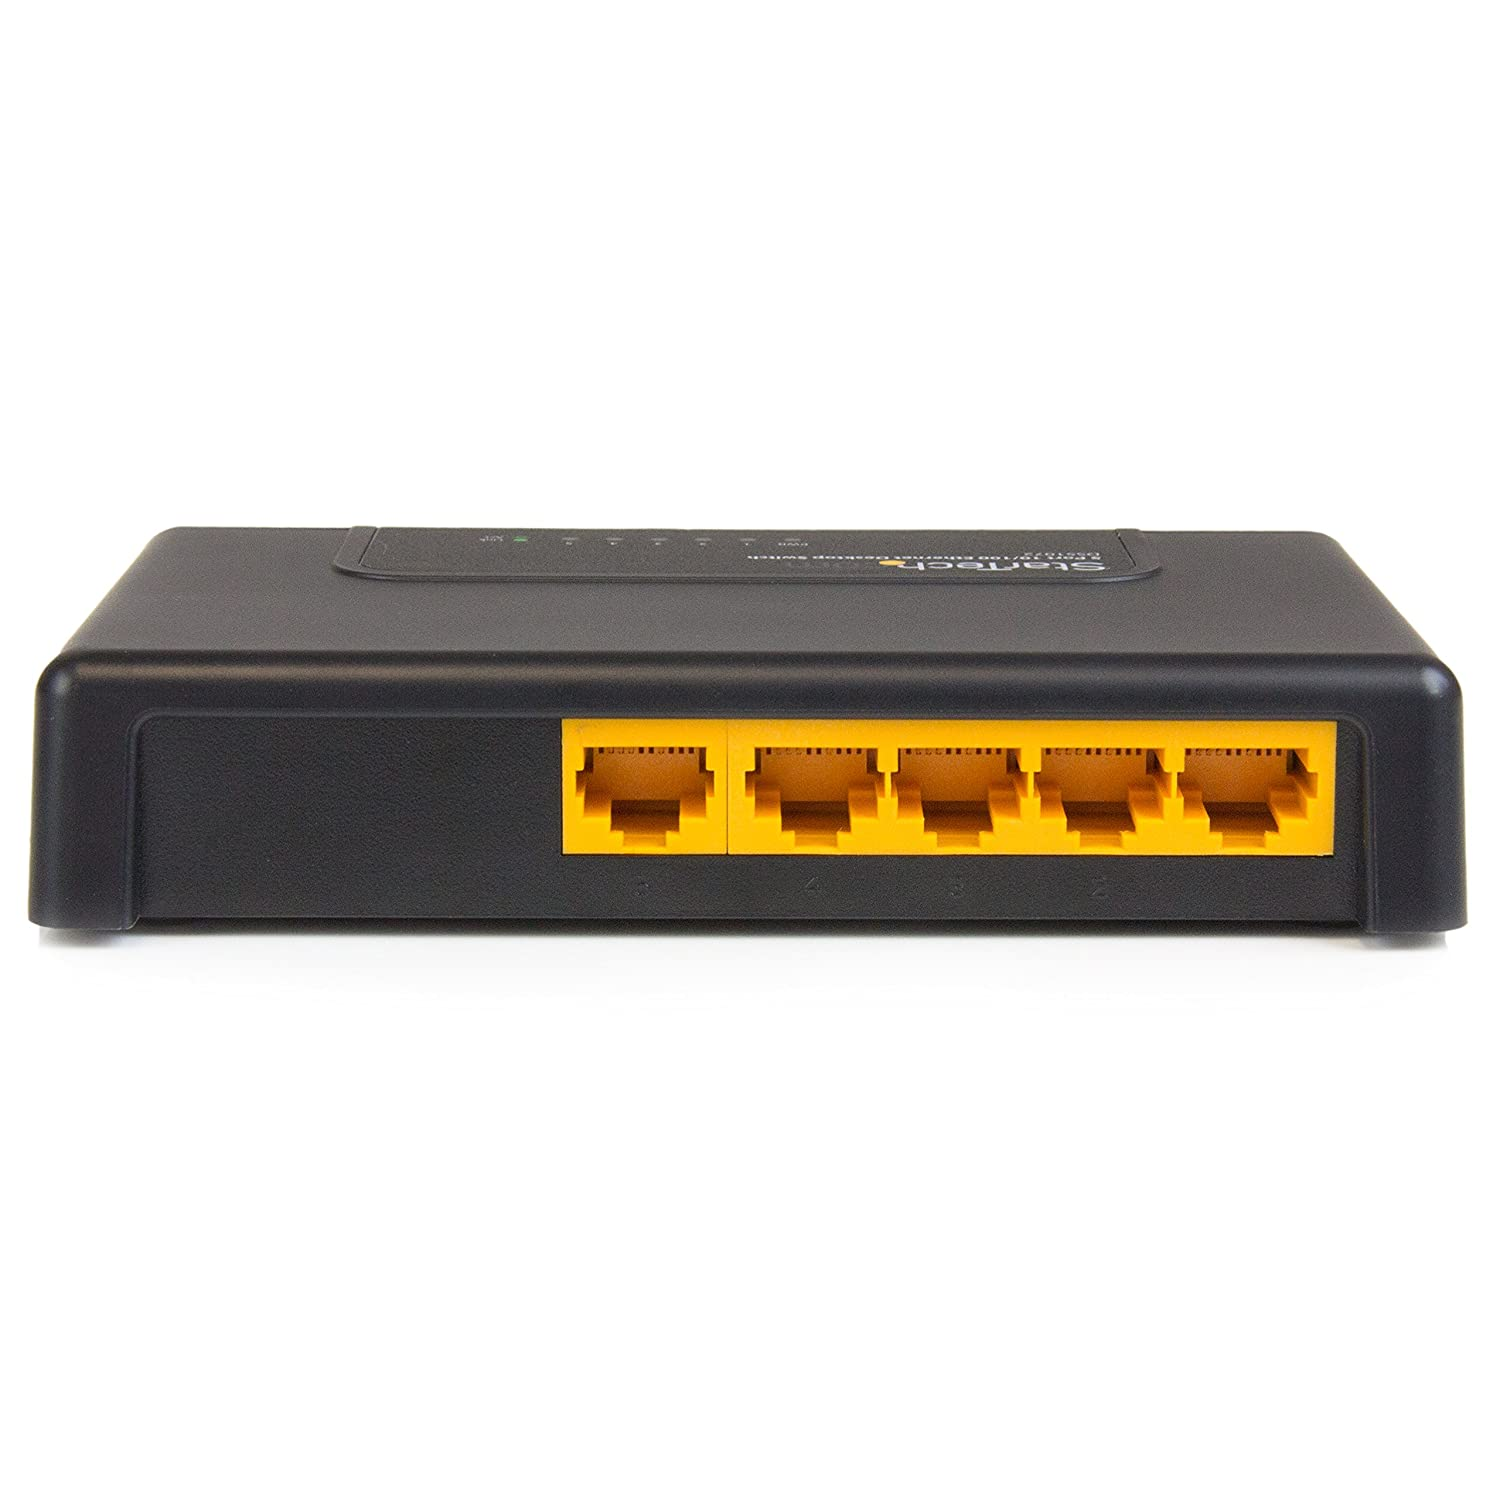 StarTech.com IES5102 5 Port Industrial Ethernet Switch-Din Rail Mount-10//100 Unmanaged Network Switch-IP30 Rated Energy Efficient